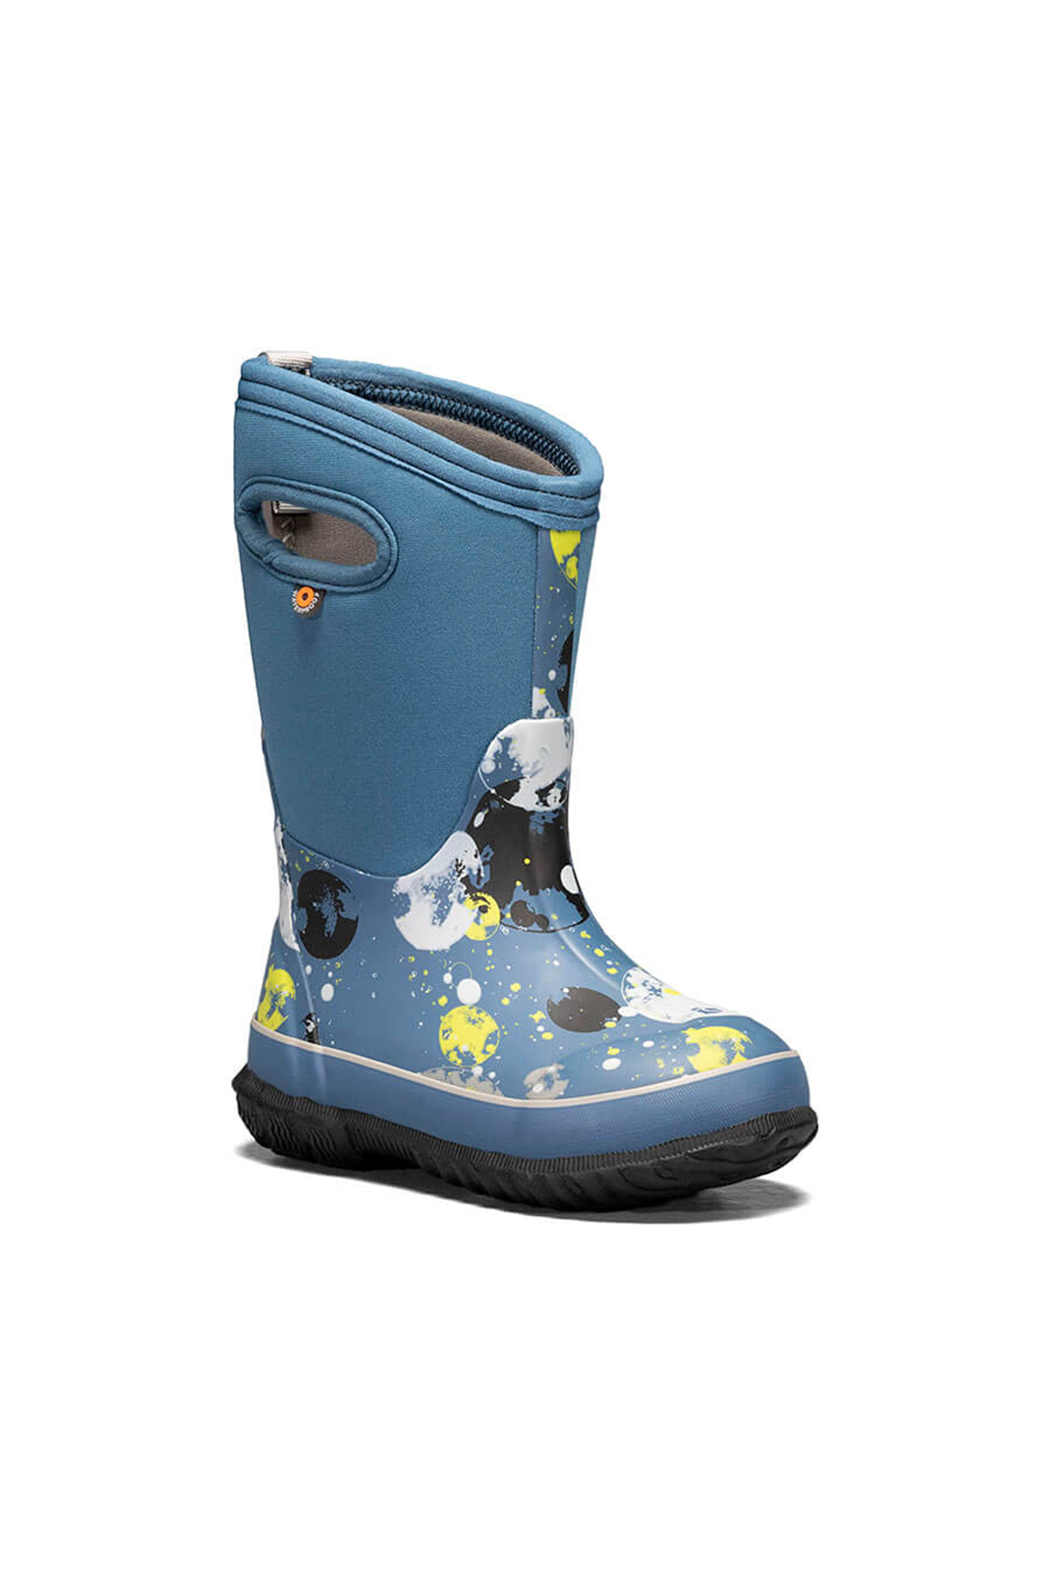 bogs  Classic Waterproof Winter Boots - Moons - Front Full Image